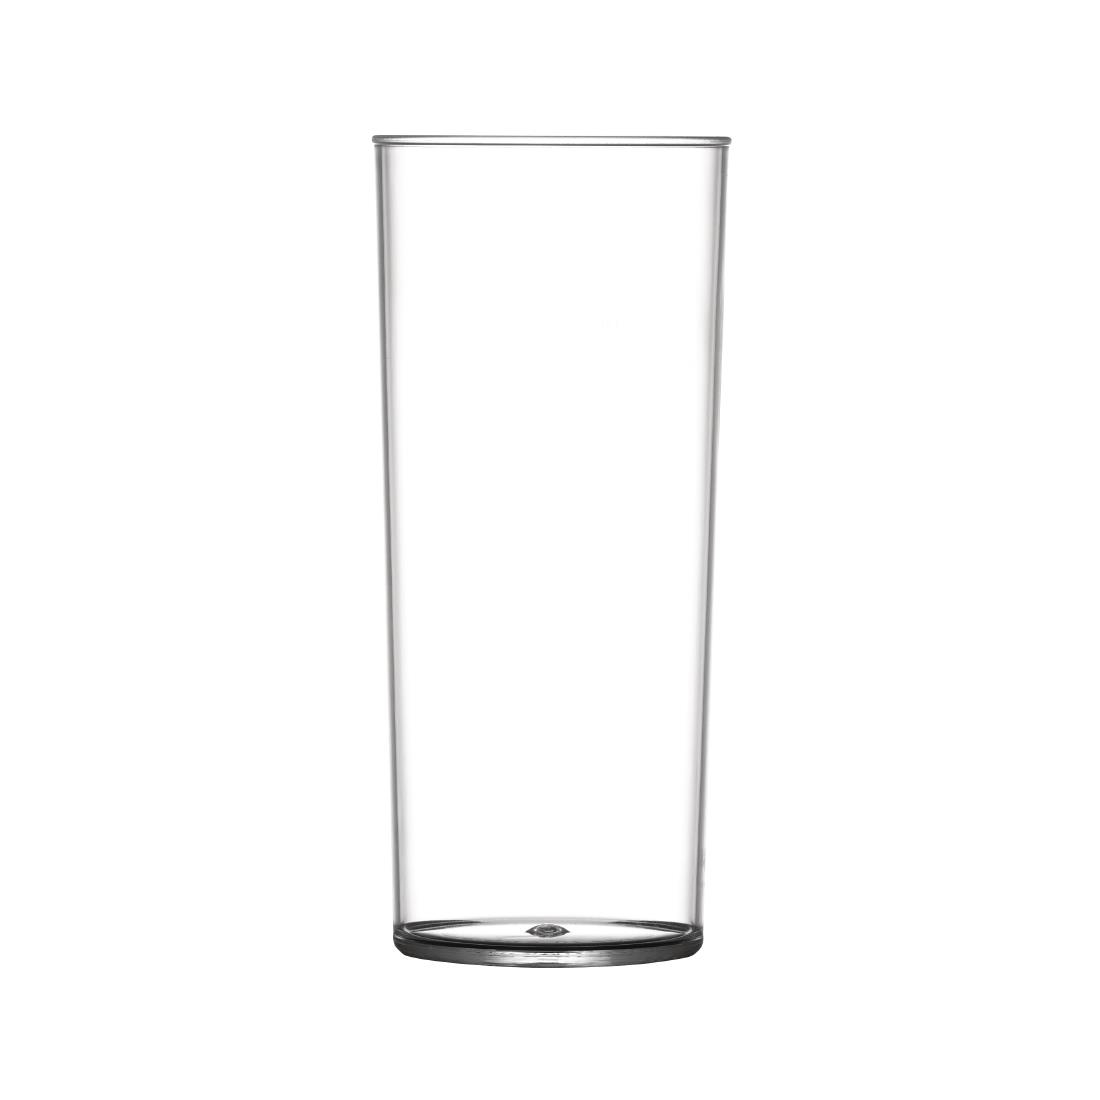 Image of BBP Polycarbonate Hi Ball Glasses 340ml CE Marked (Pack of 48) Pack of 48